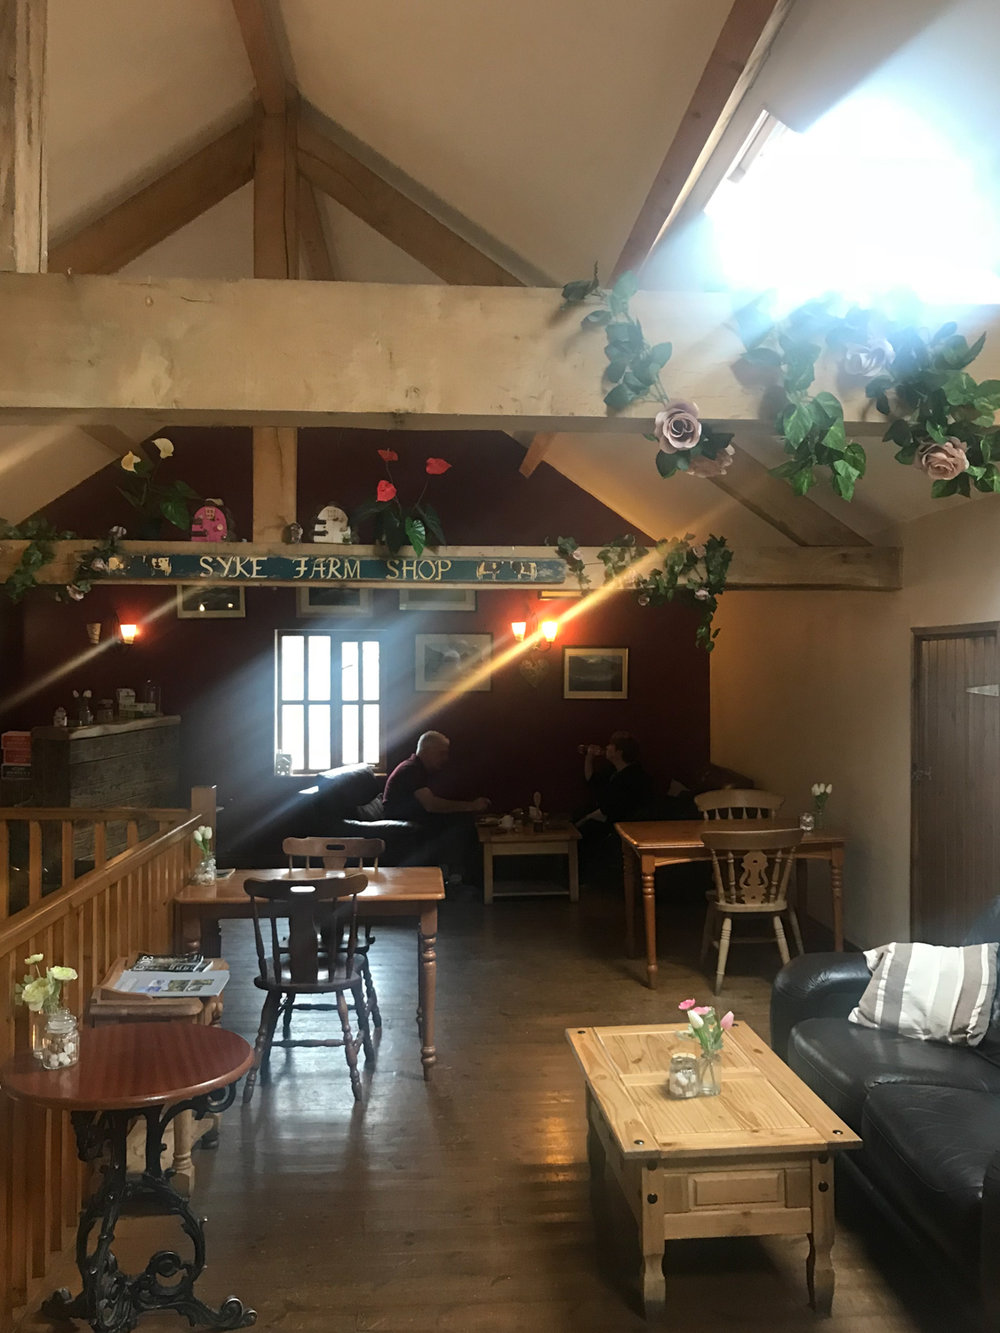 Tea rooms in the Lake District - Syke Farm, Buttermere